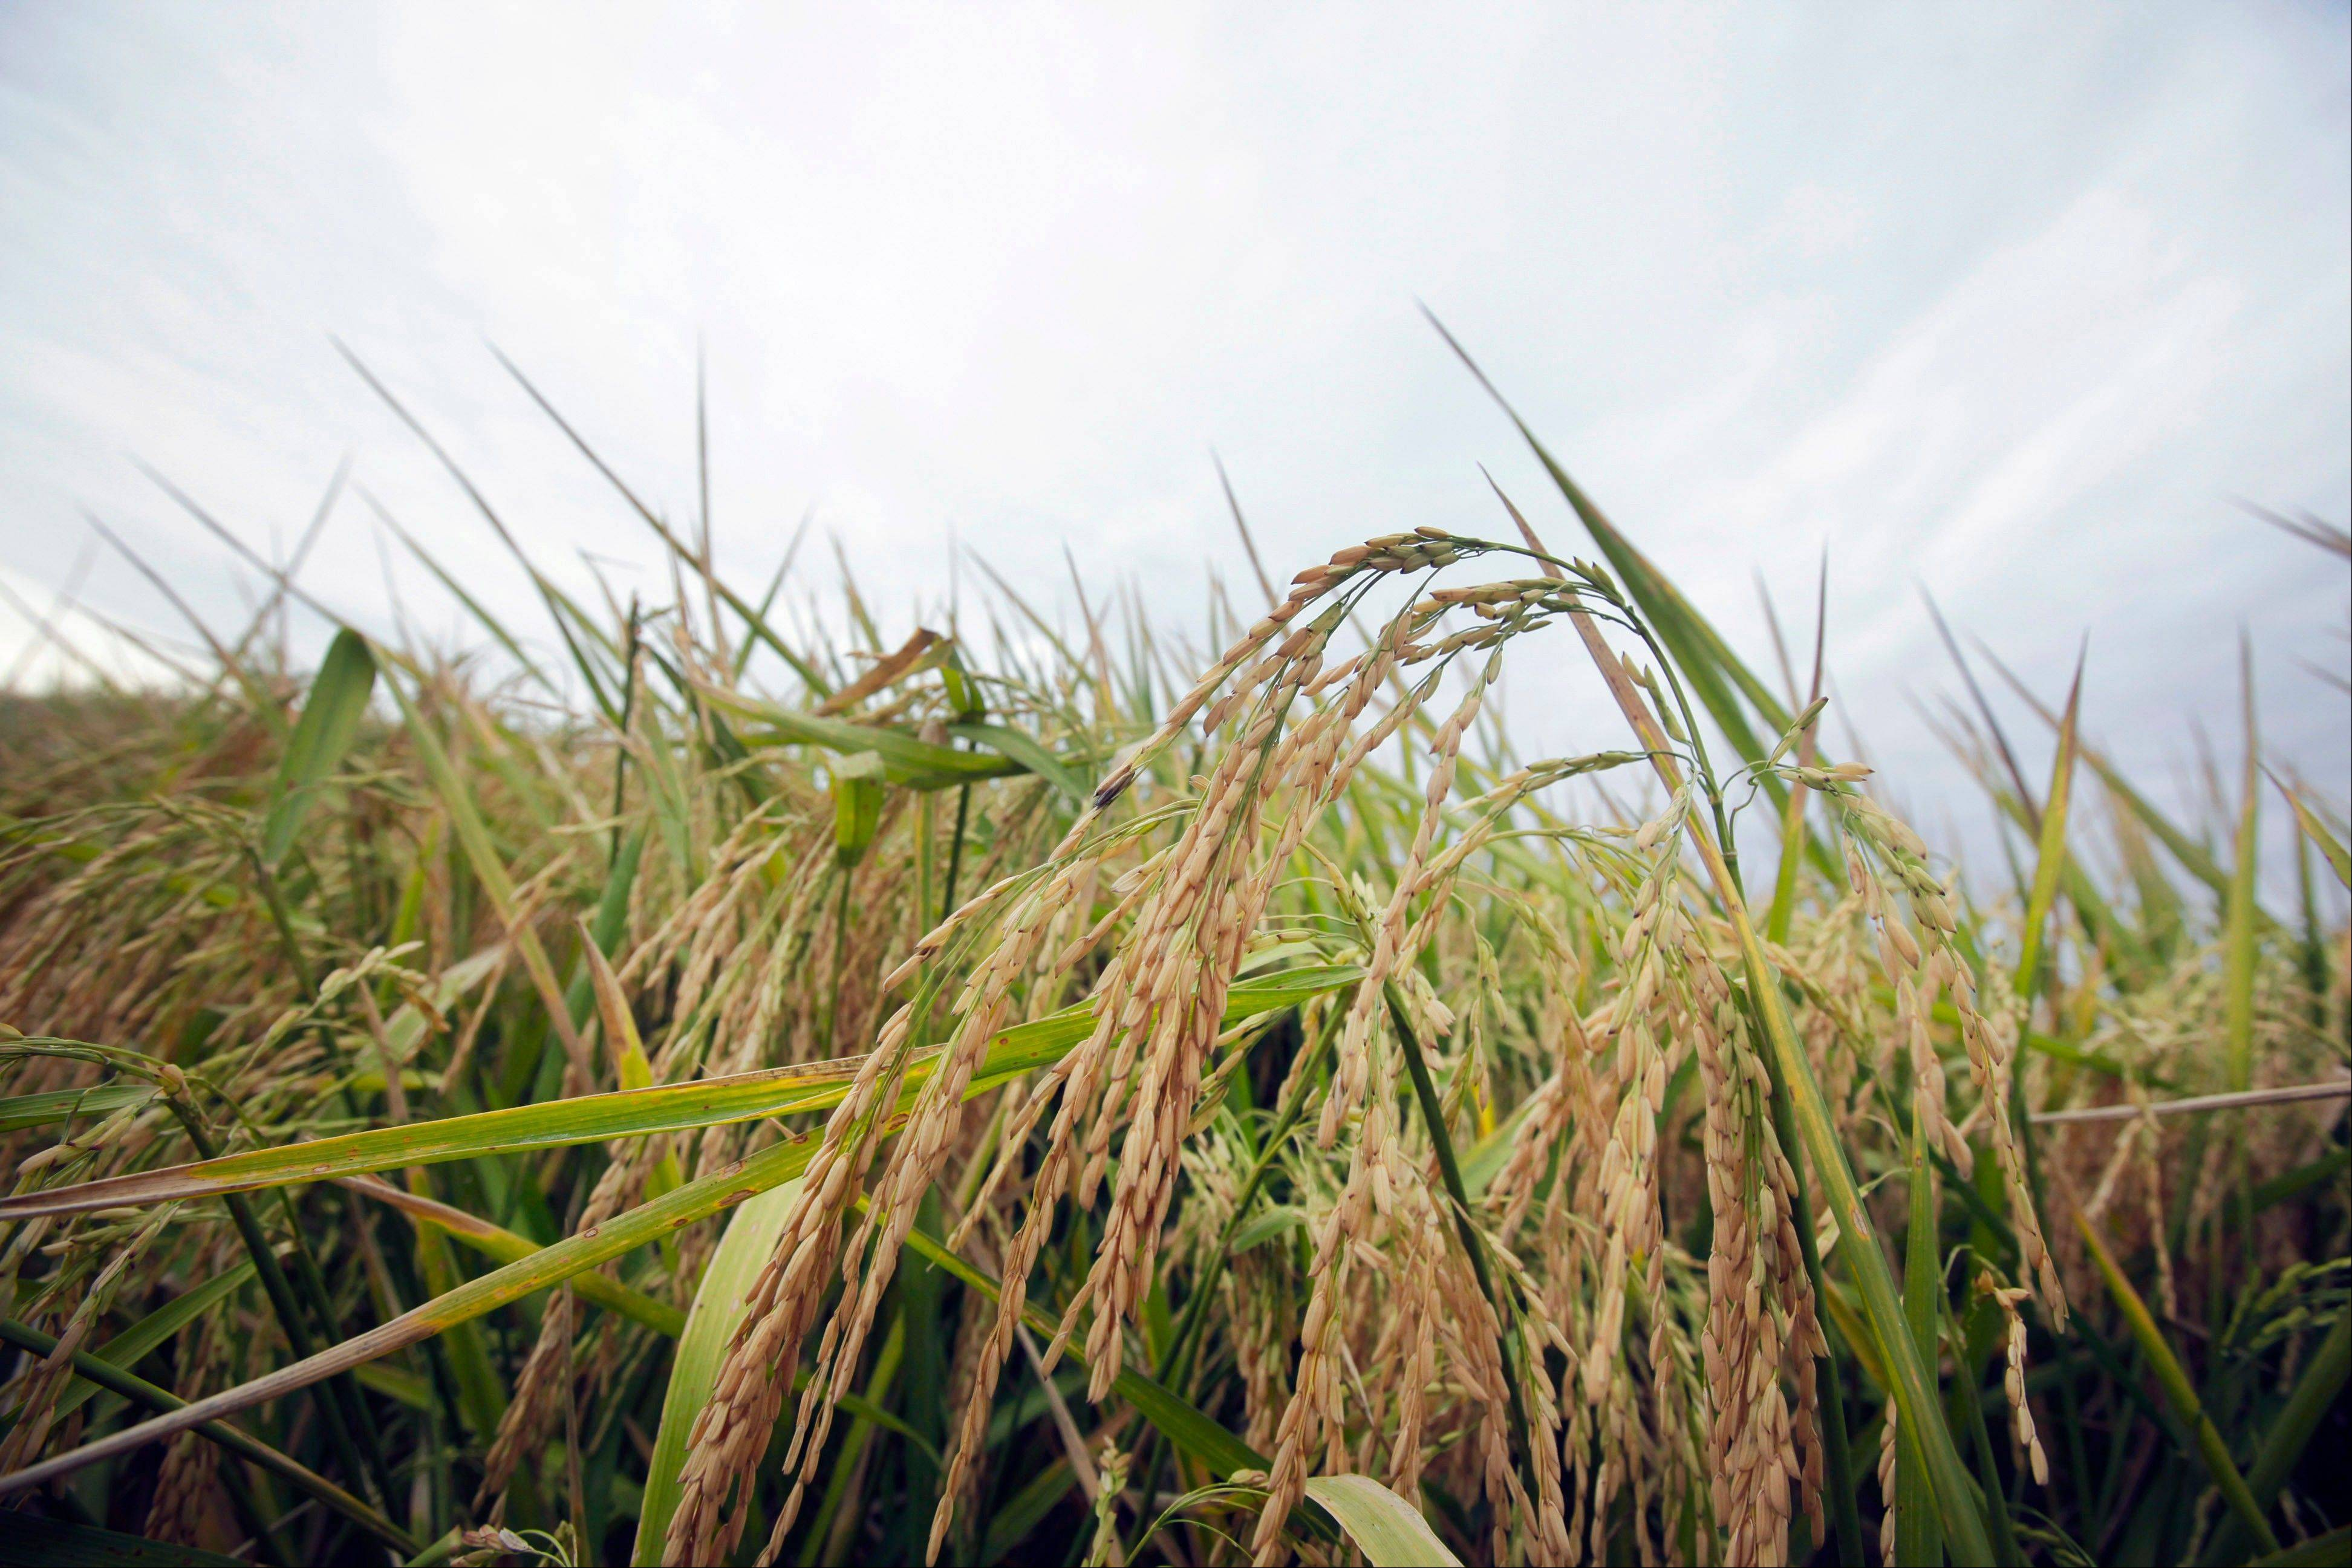 Consumer groups are pressuring the U.S. Food and Drug Administration to set federal guidance on allowable levels of arsenic in rice, prompting the agency to consider possible new standards.